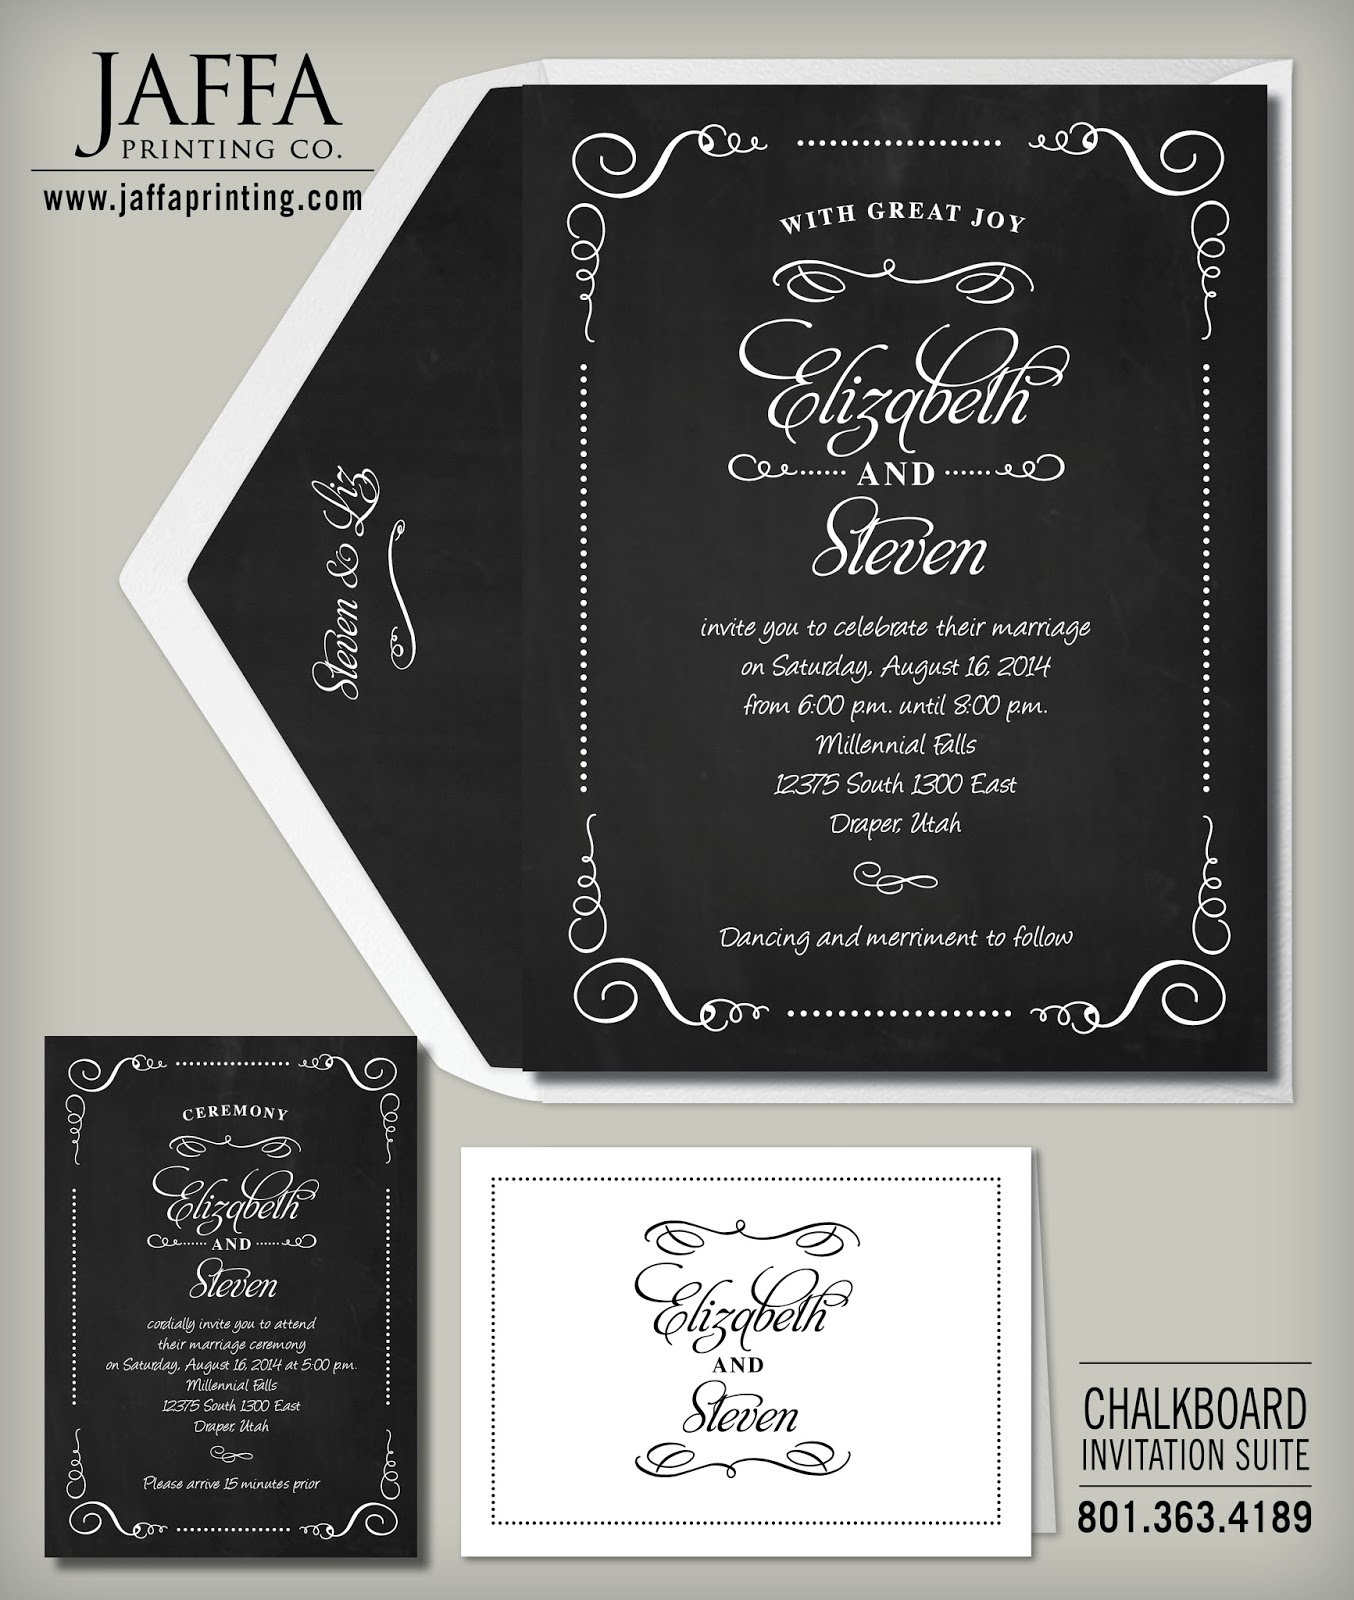 Wedding Invitation Blog: Chalkboard Wedding Invitations